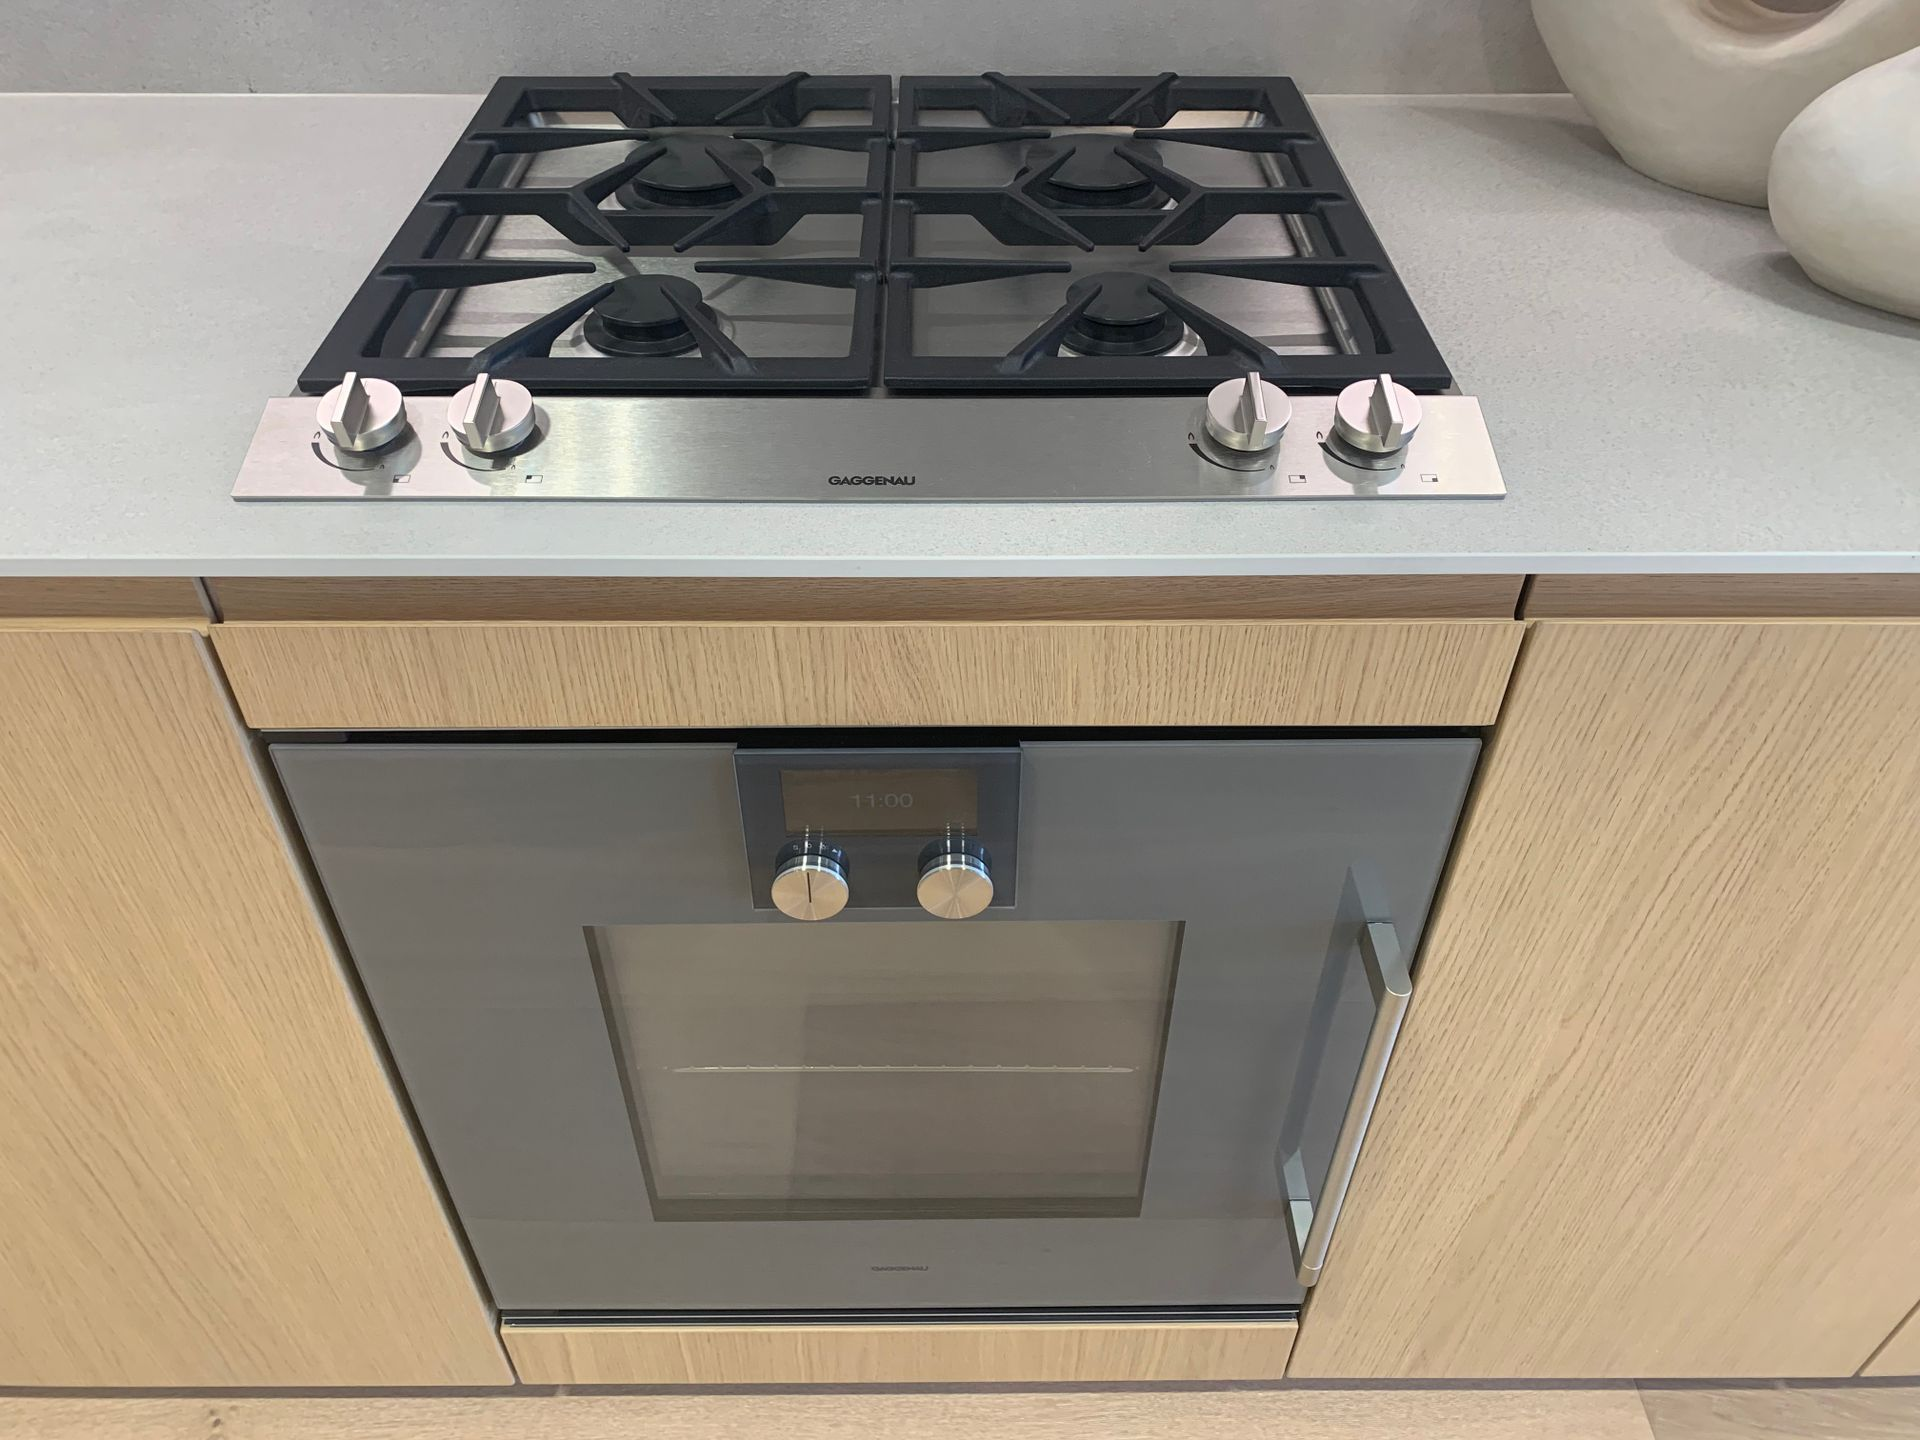 Gaggenau appliances at Two Burrard Place (1223 Hornby Street, Downtown VW, Vancouver West)